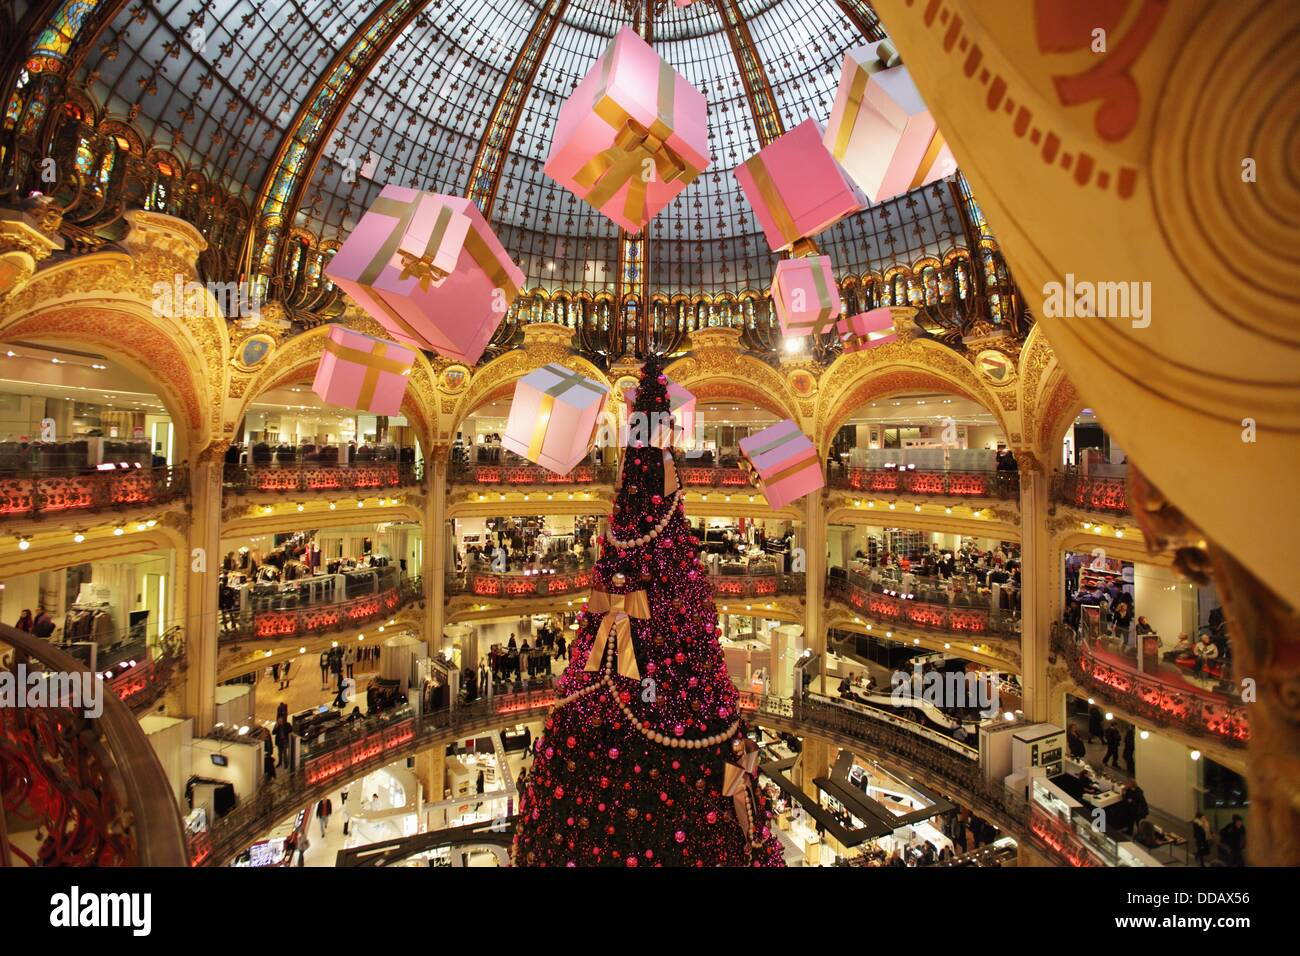 christmas decorations in galeries lafayette department store paris stock photo 59861682 alamy. Black Bedroom Furniture Sets. Home Design Ideas